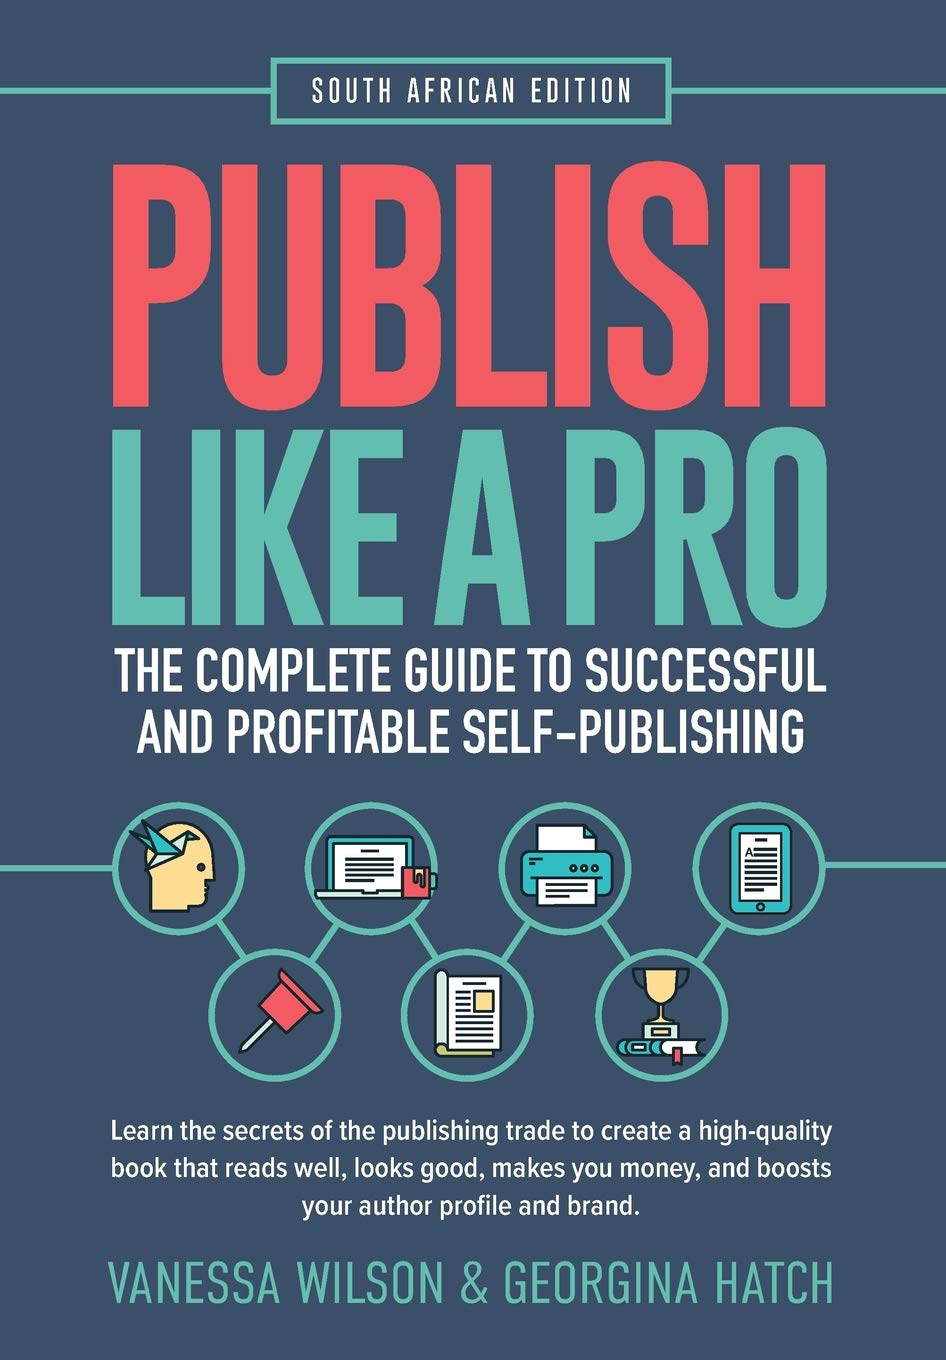 Publish Like a Pro: The Complete Guide to Successful and Profitable Self- Publishing: Vanessa Wilson, Georgina Hatch: 9780639946603: Amazon.com: Books